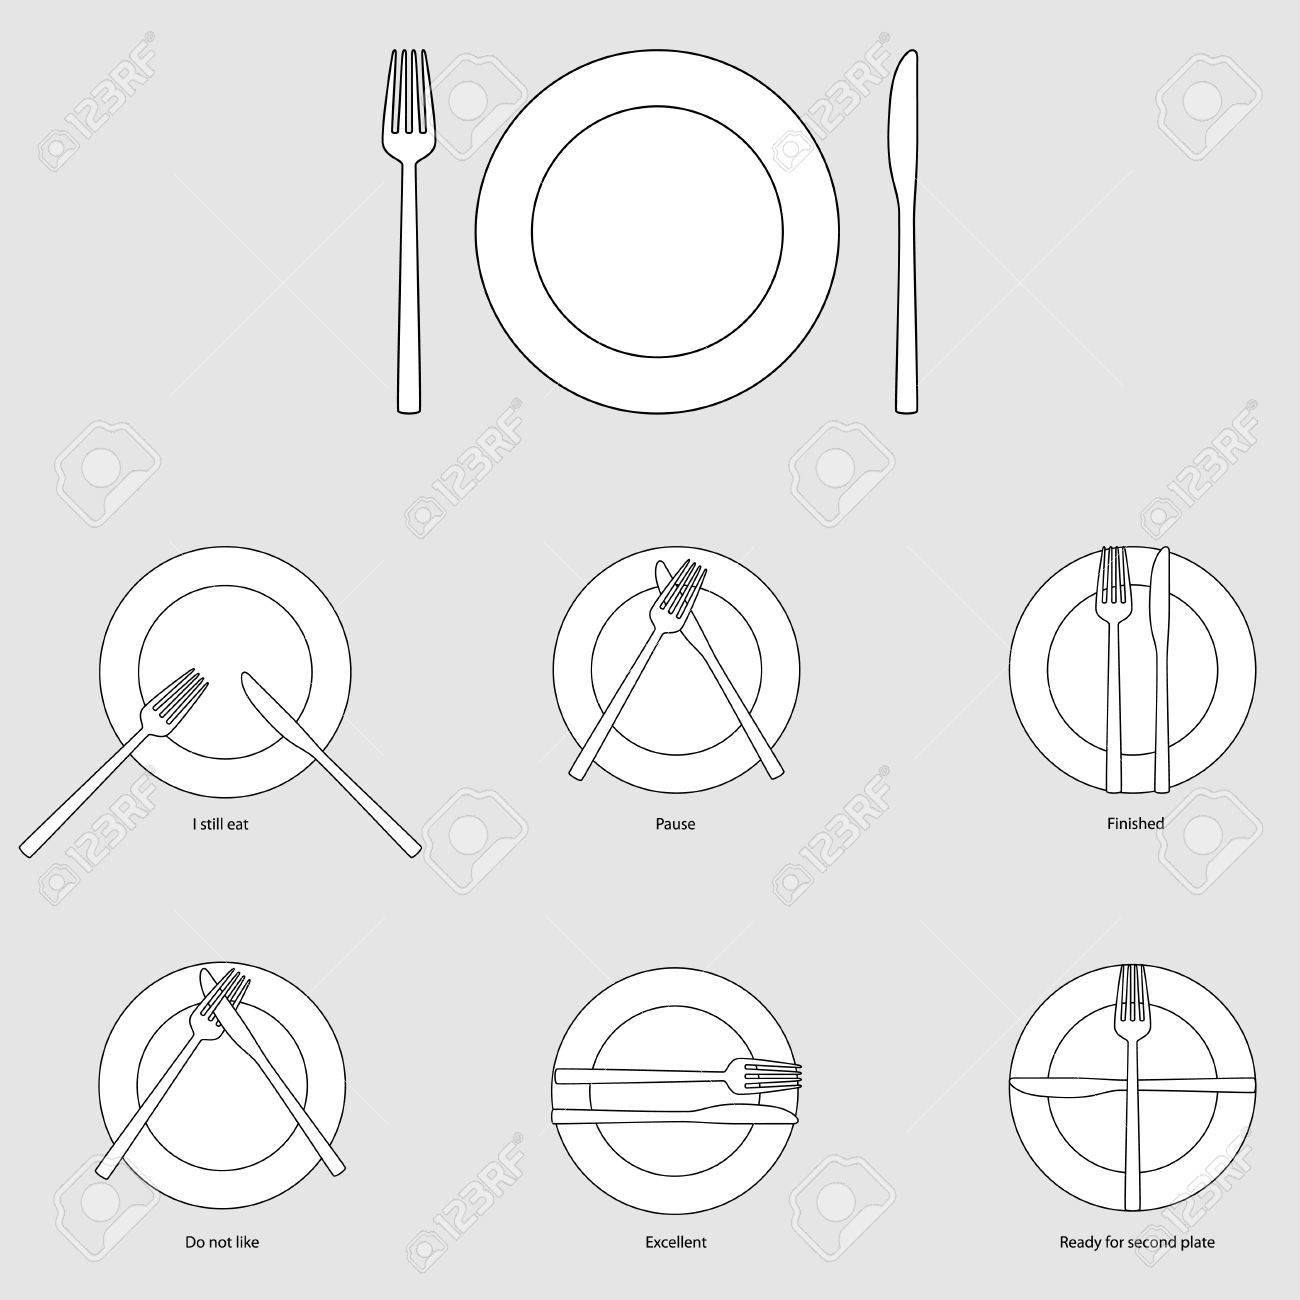 Table etiquette vector illustration Stock Vector - 53802996  sc 1 st  123RF.com : table atticates  - Aeropaca.Org